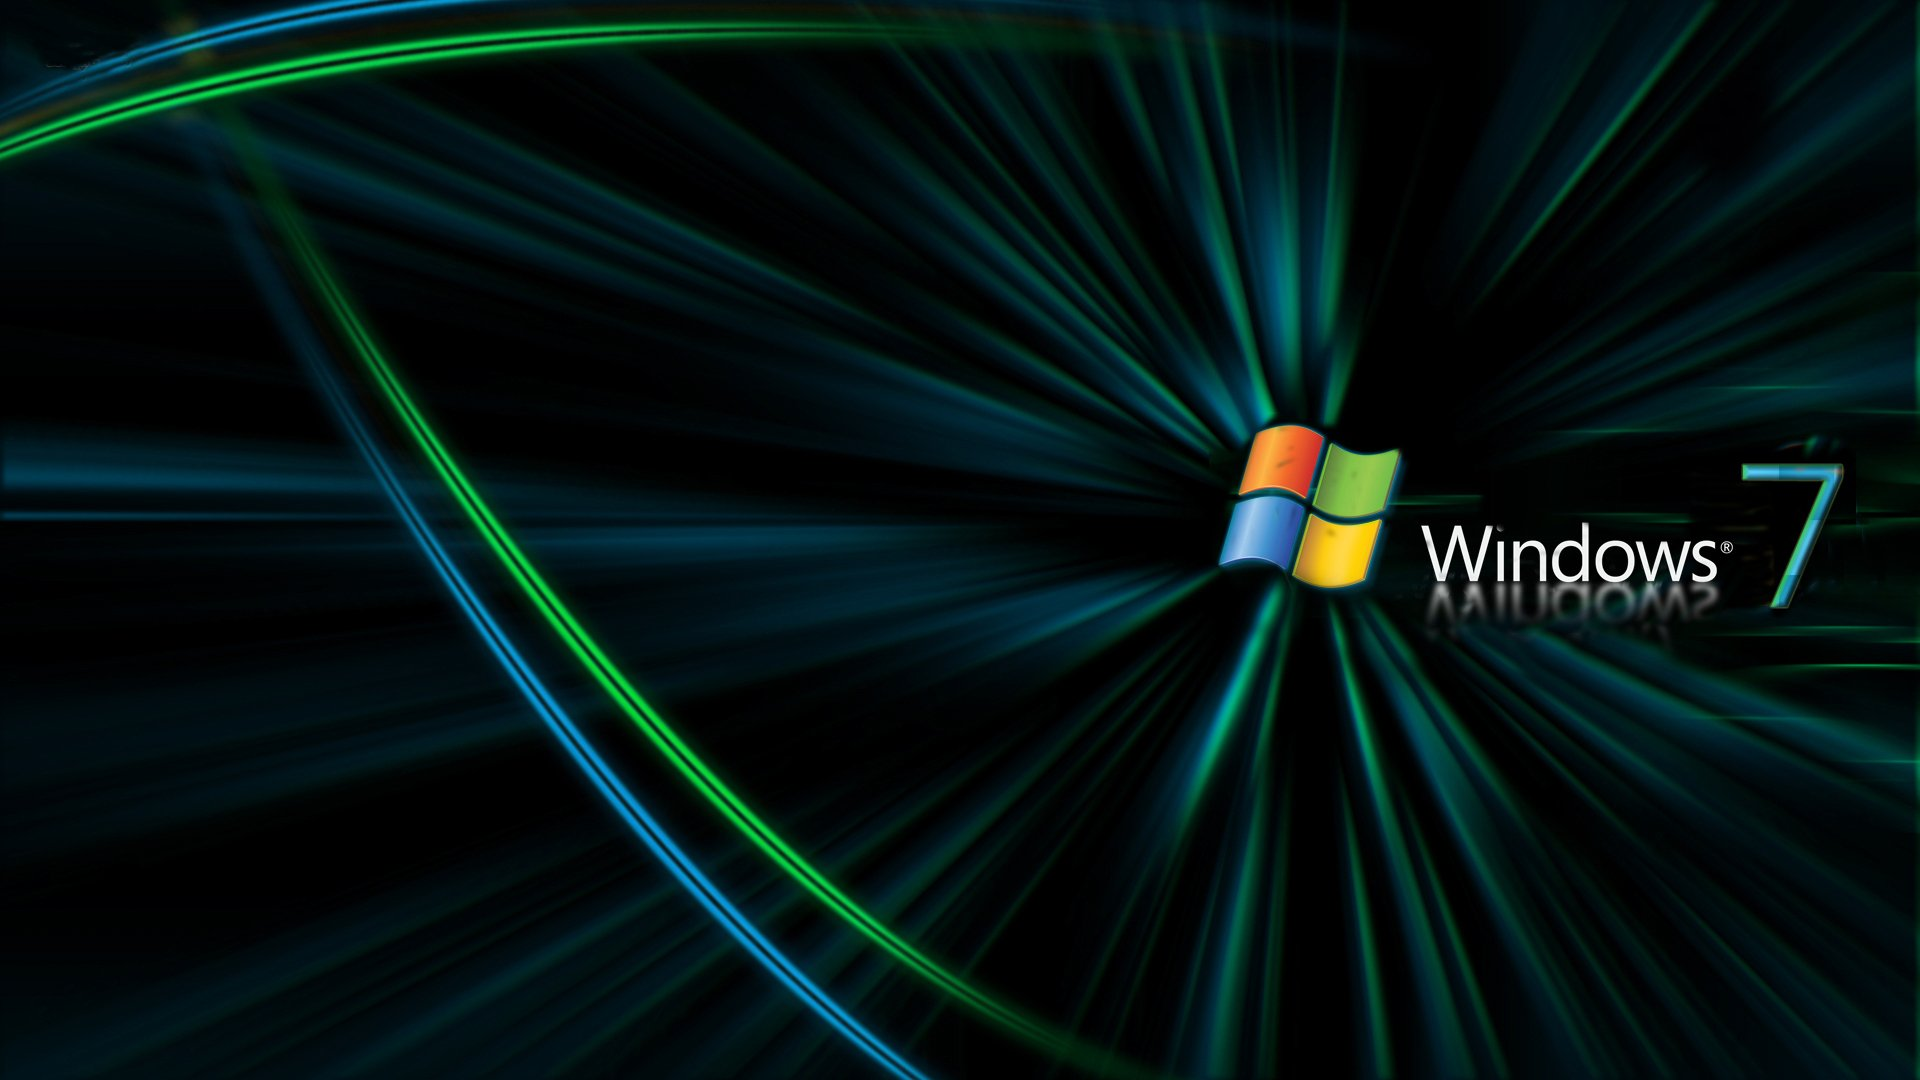 Windows 7 wallpaper   Hd hintergrundbildercom 1920x1080